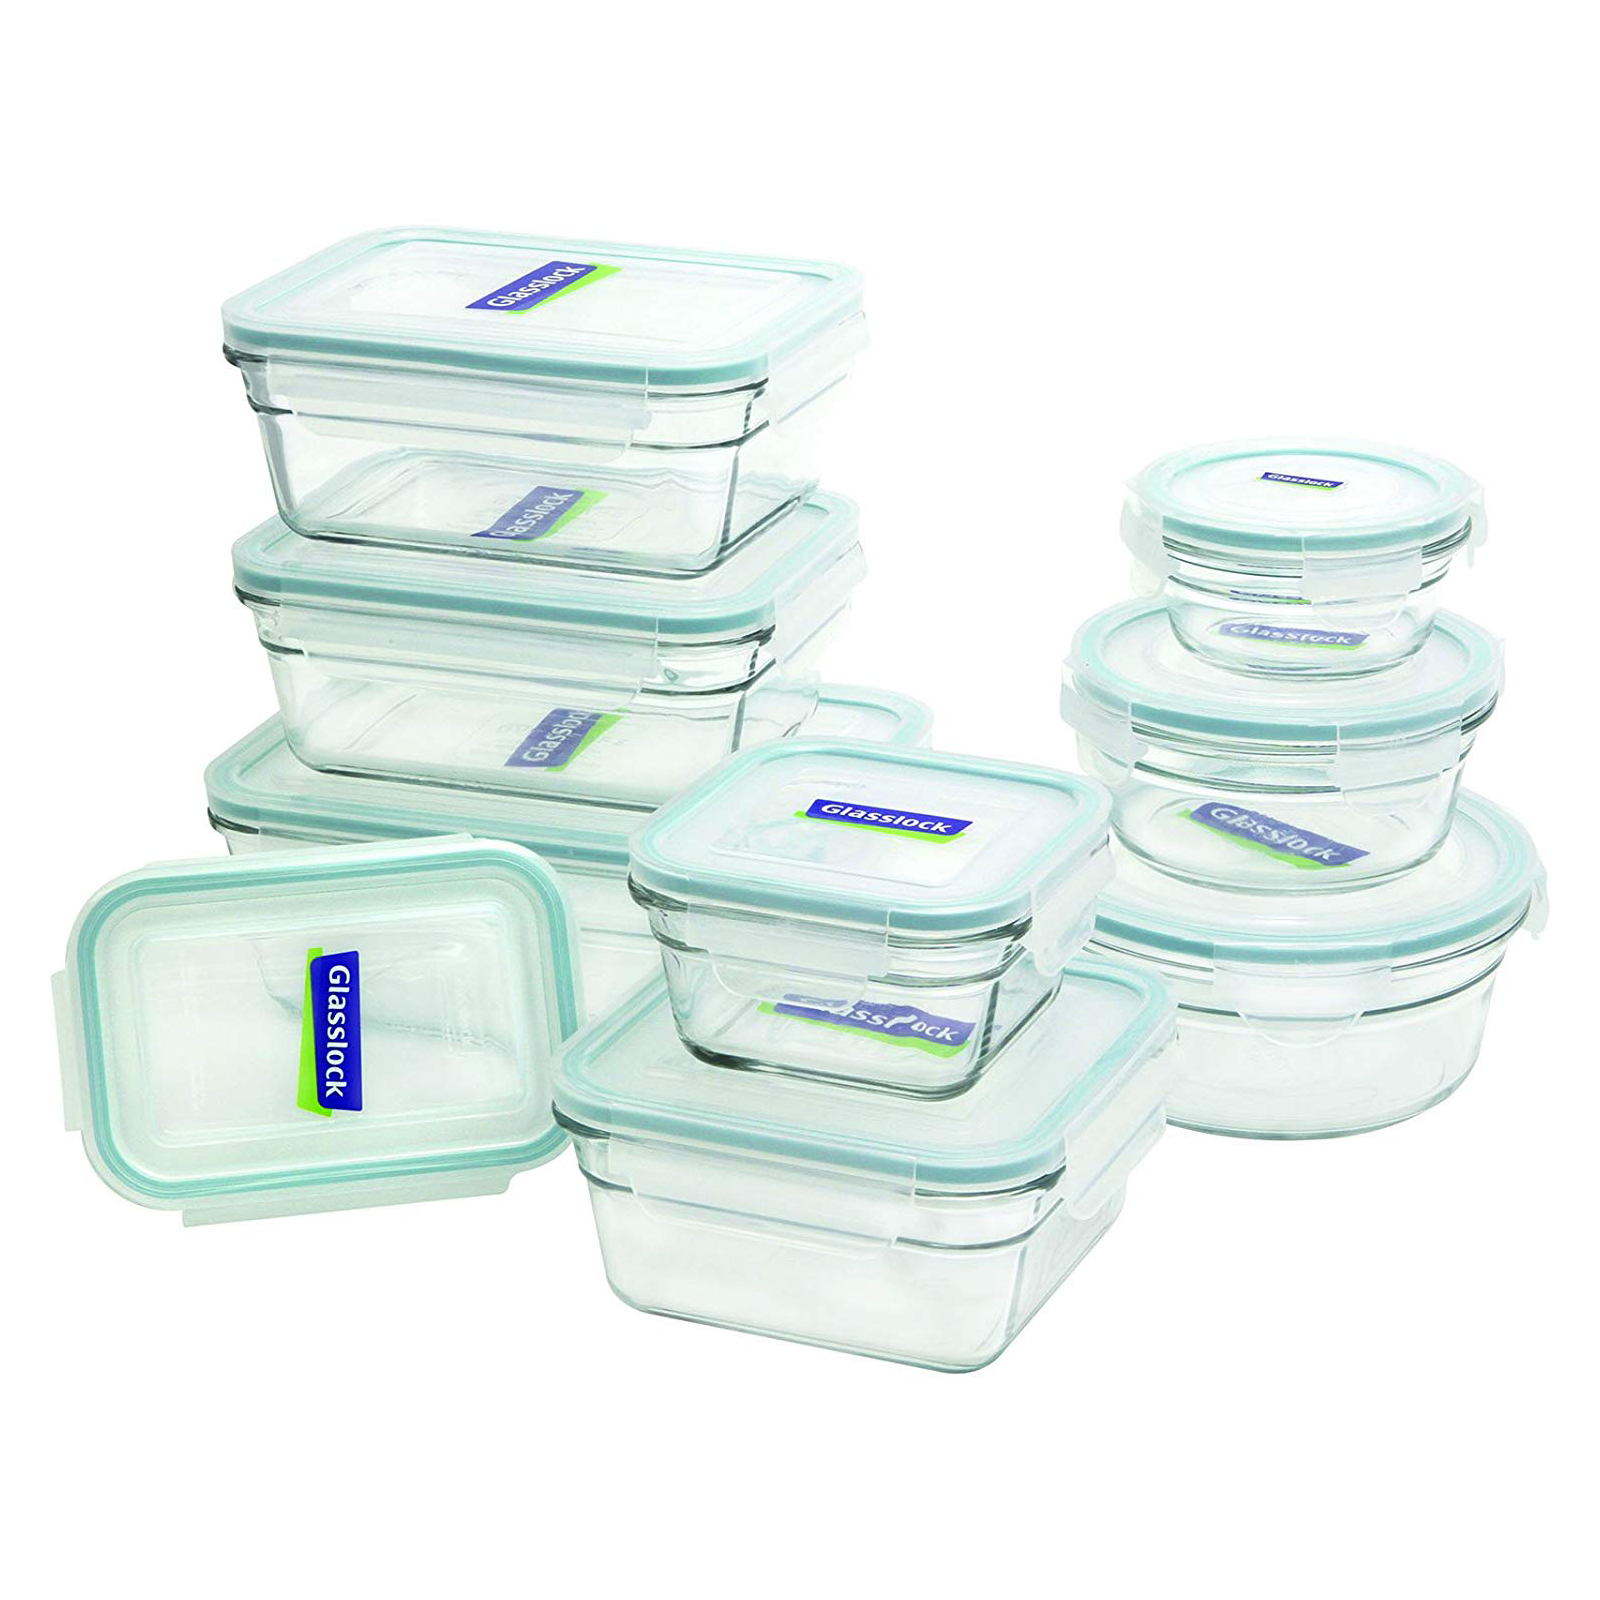 9 Best Glass Food Storage Containers 2019 According To